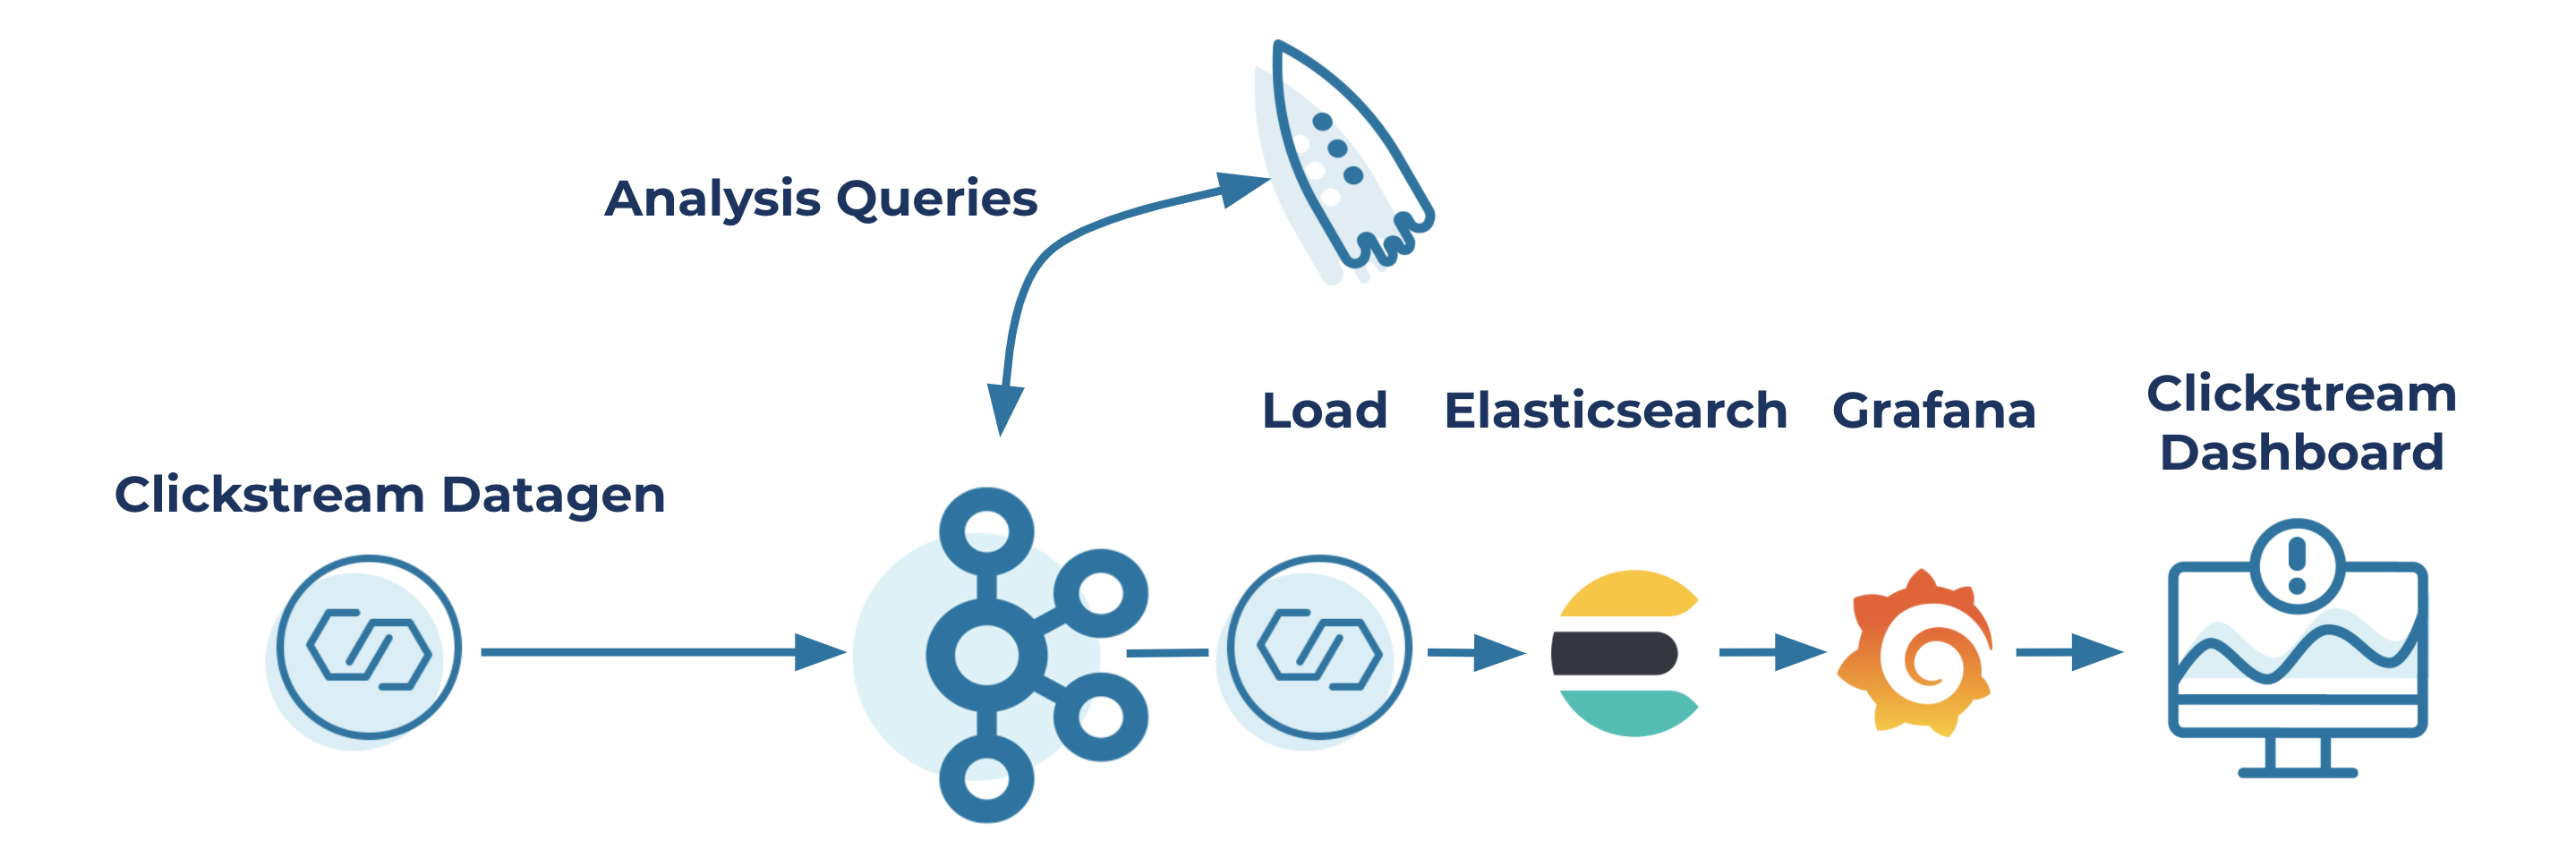 Clickstream Datagen ➝ Kafka | Analysis Queries with ksqlDB ➝ Load ➝ Elasticsearch ➝ Grafana ➝ Clickstream Dashboard